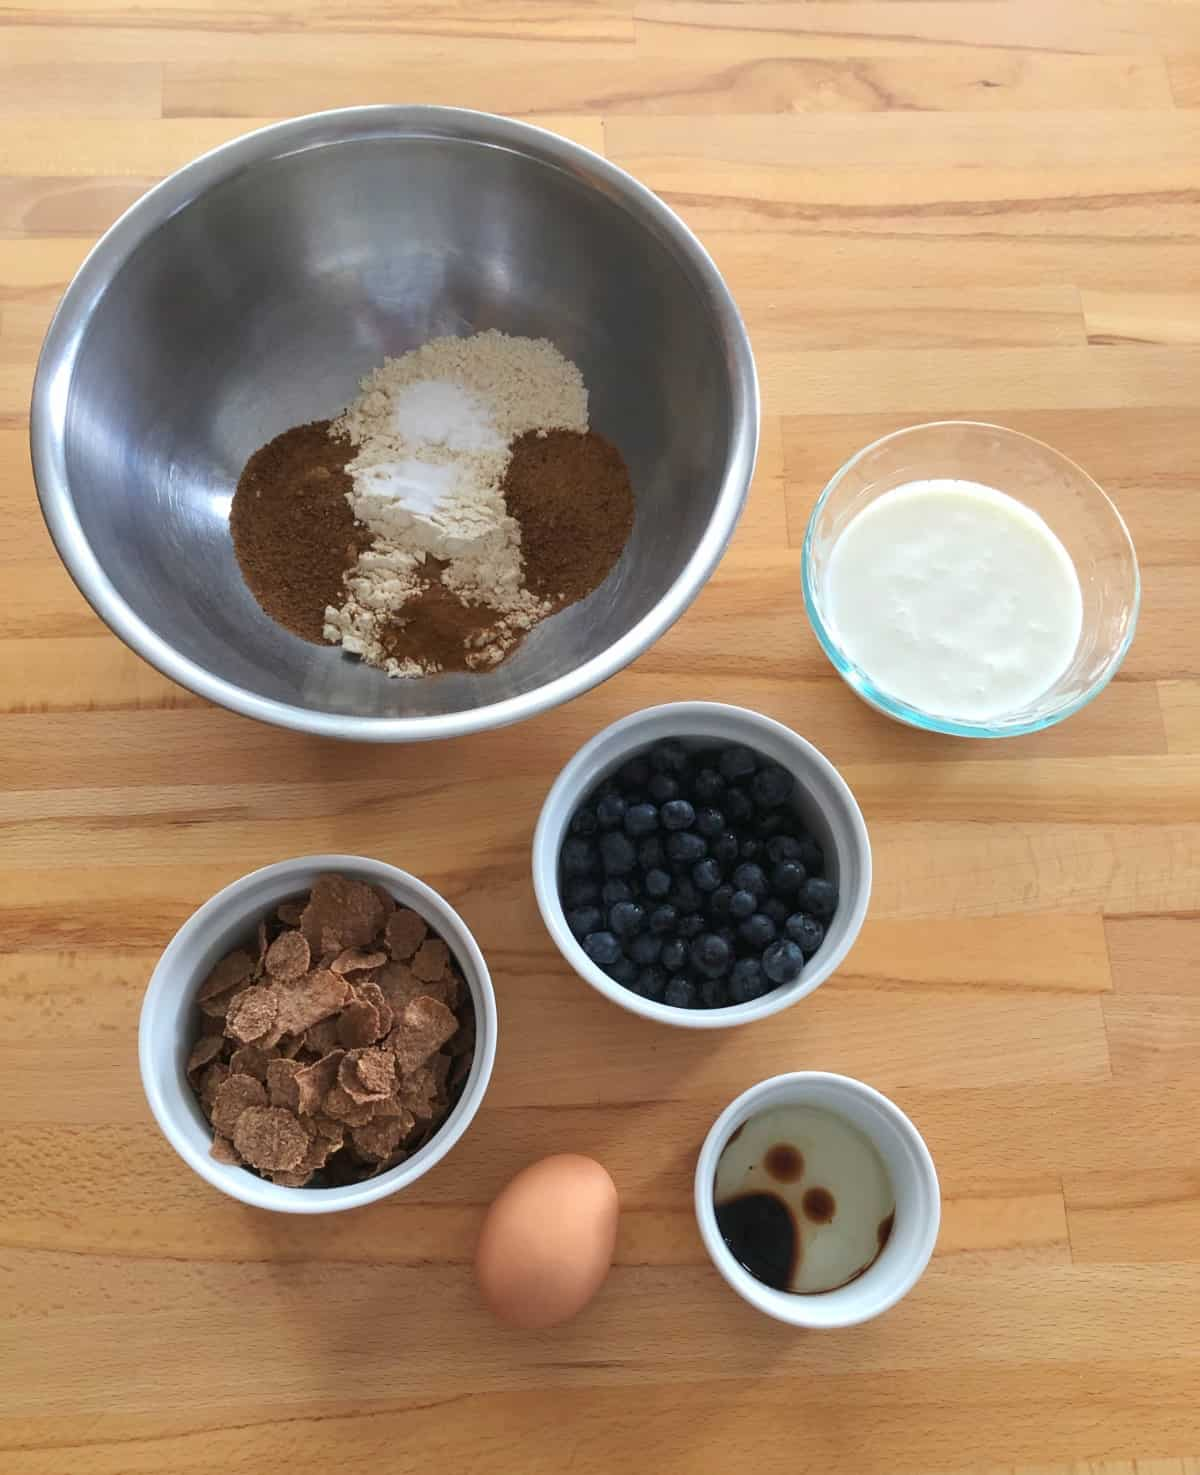 Bran flakes, blueberries, egg, buttermilk, oil, vanilla and flour mixture in separate bowls on wooden table.